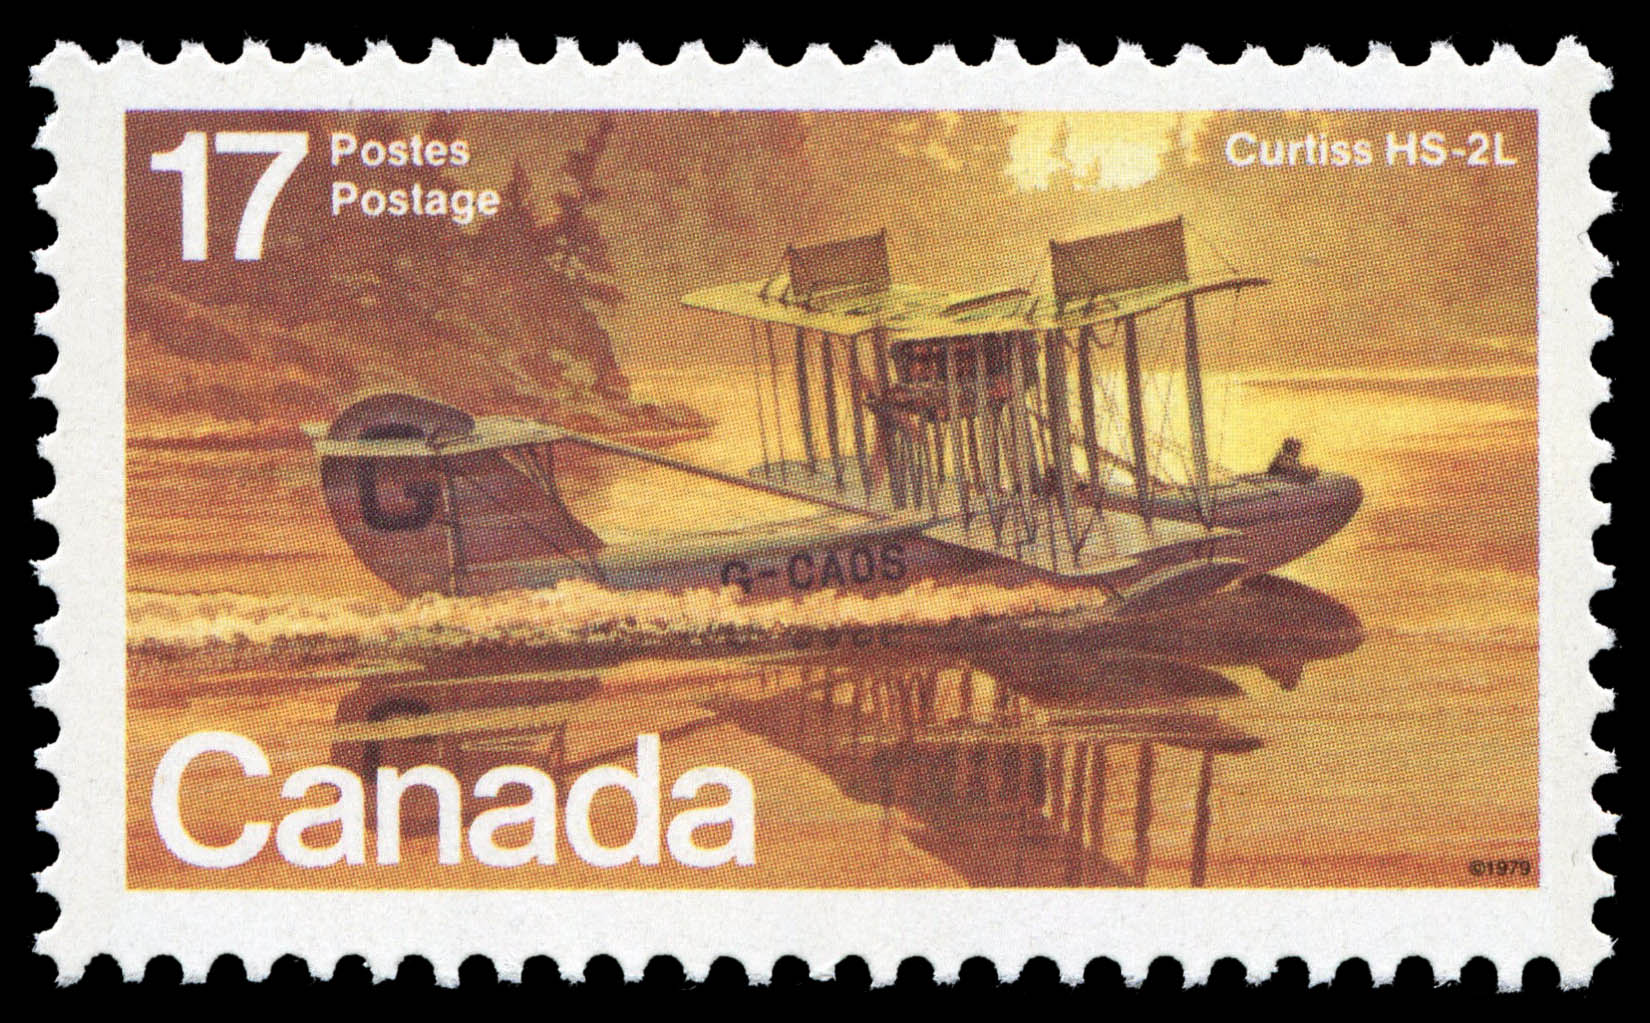 Curtiss HS-2L Canada Postage Stamp